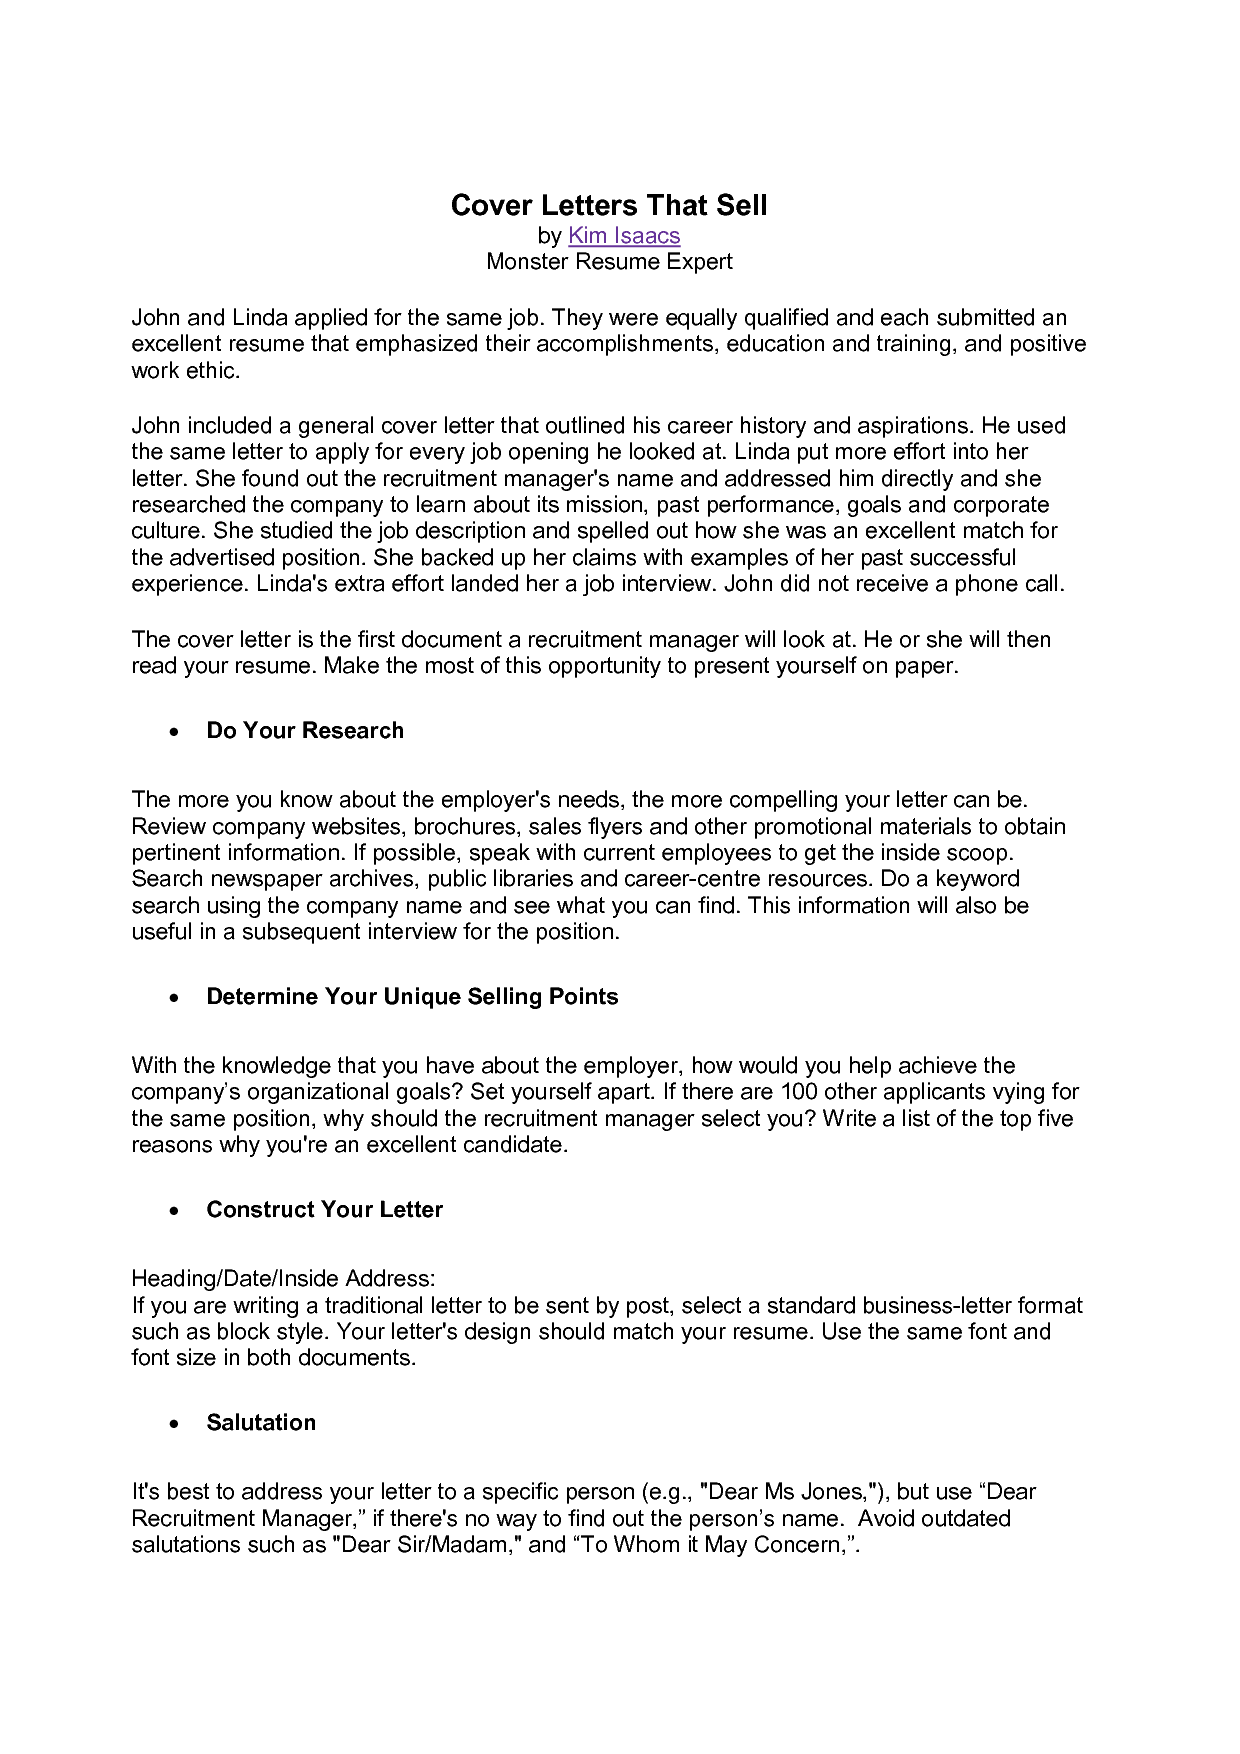 Best Place To Post Resume Interesting Monster Cover Letter Free Download Monster Cover Letter Monster